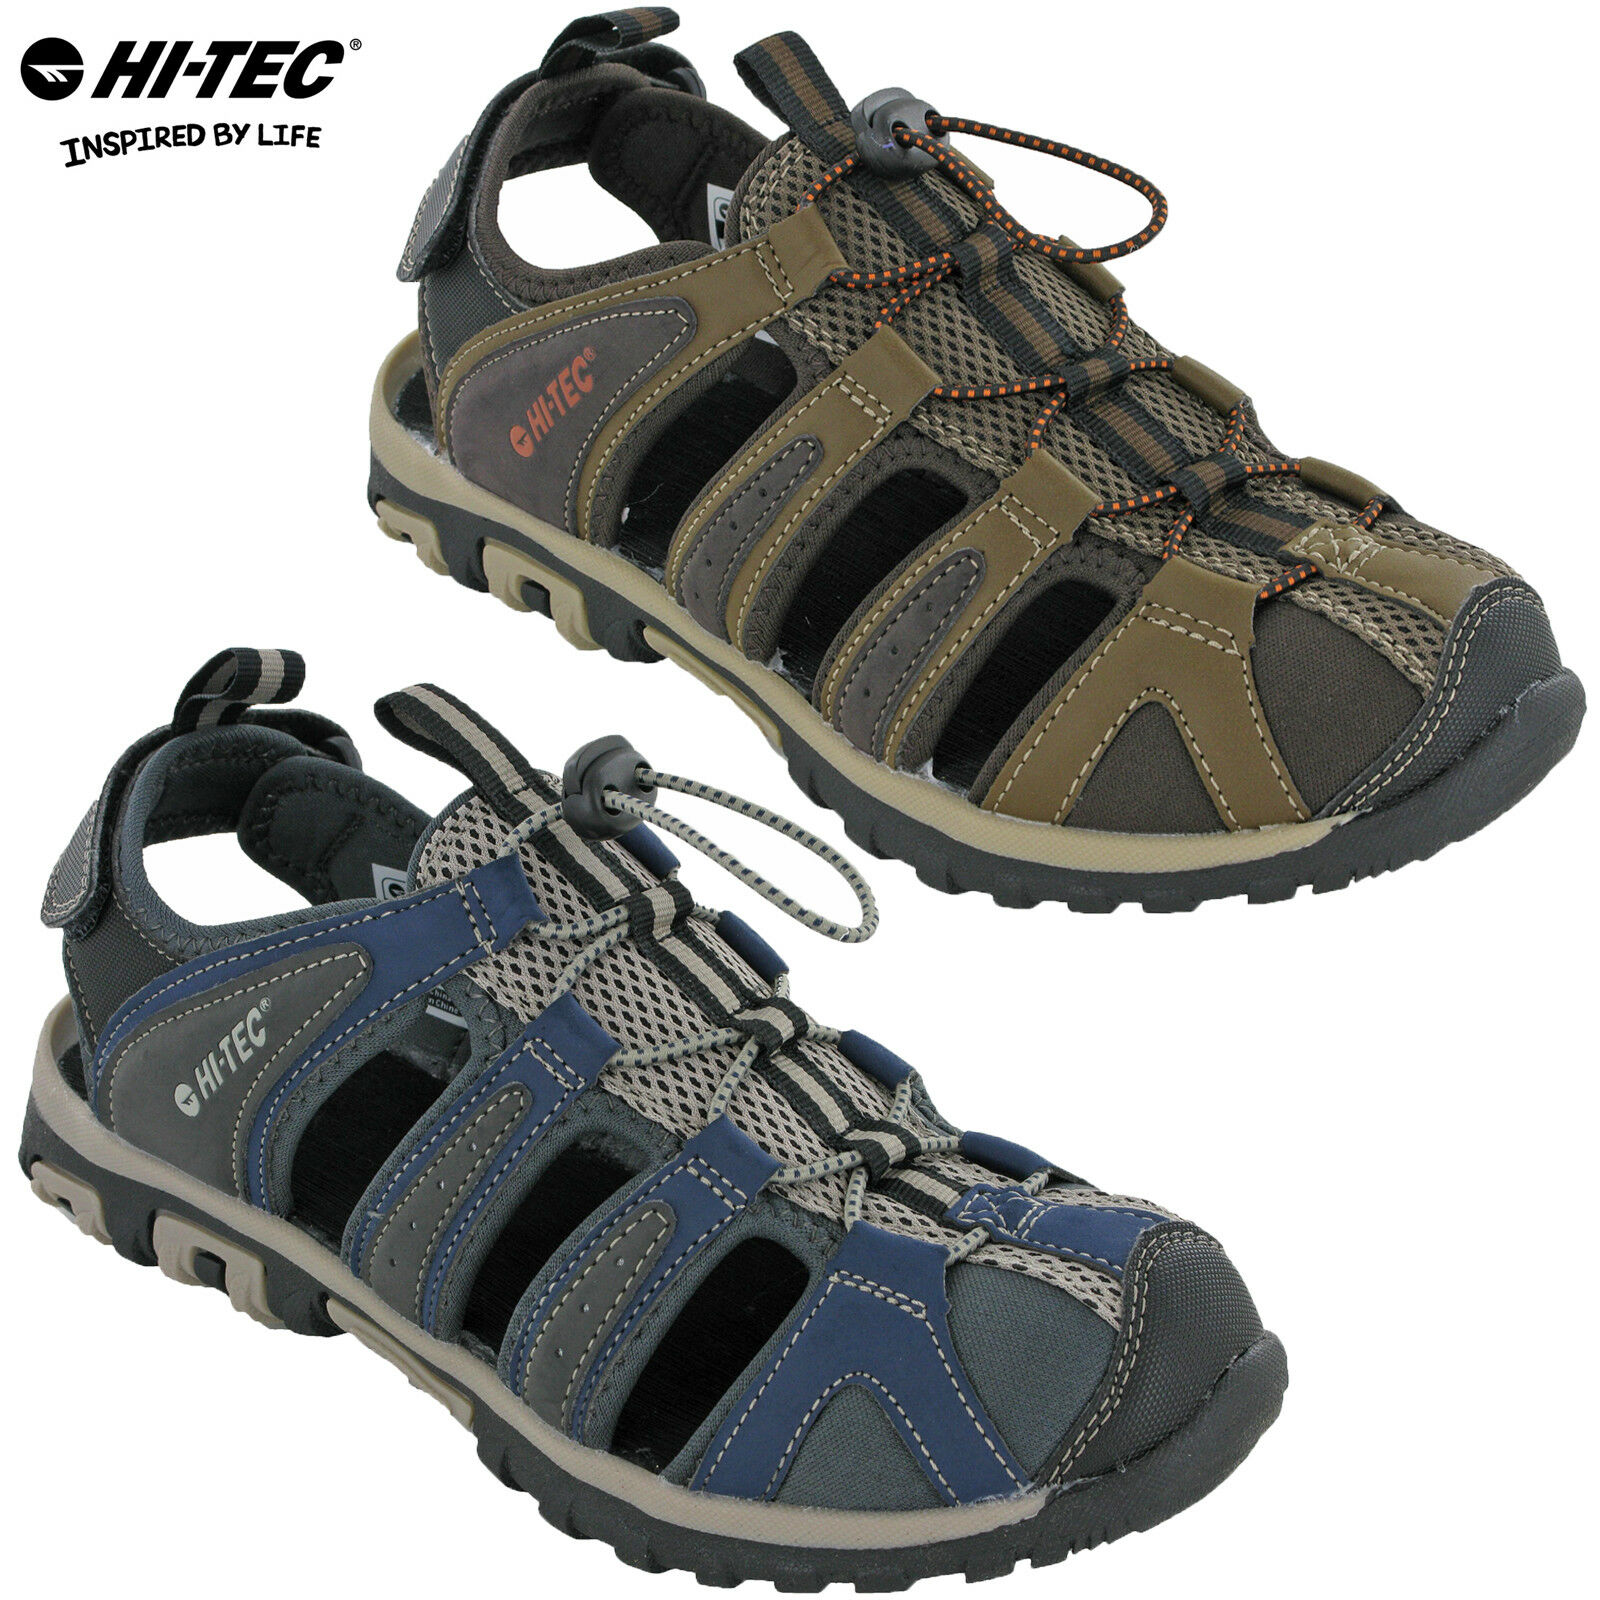 58bcfaf2c4da Details about Hi-tec Hiking Closed Toe Sandals Walking COVE BREEZE Mens  Toggle Fasten Comfort